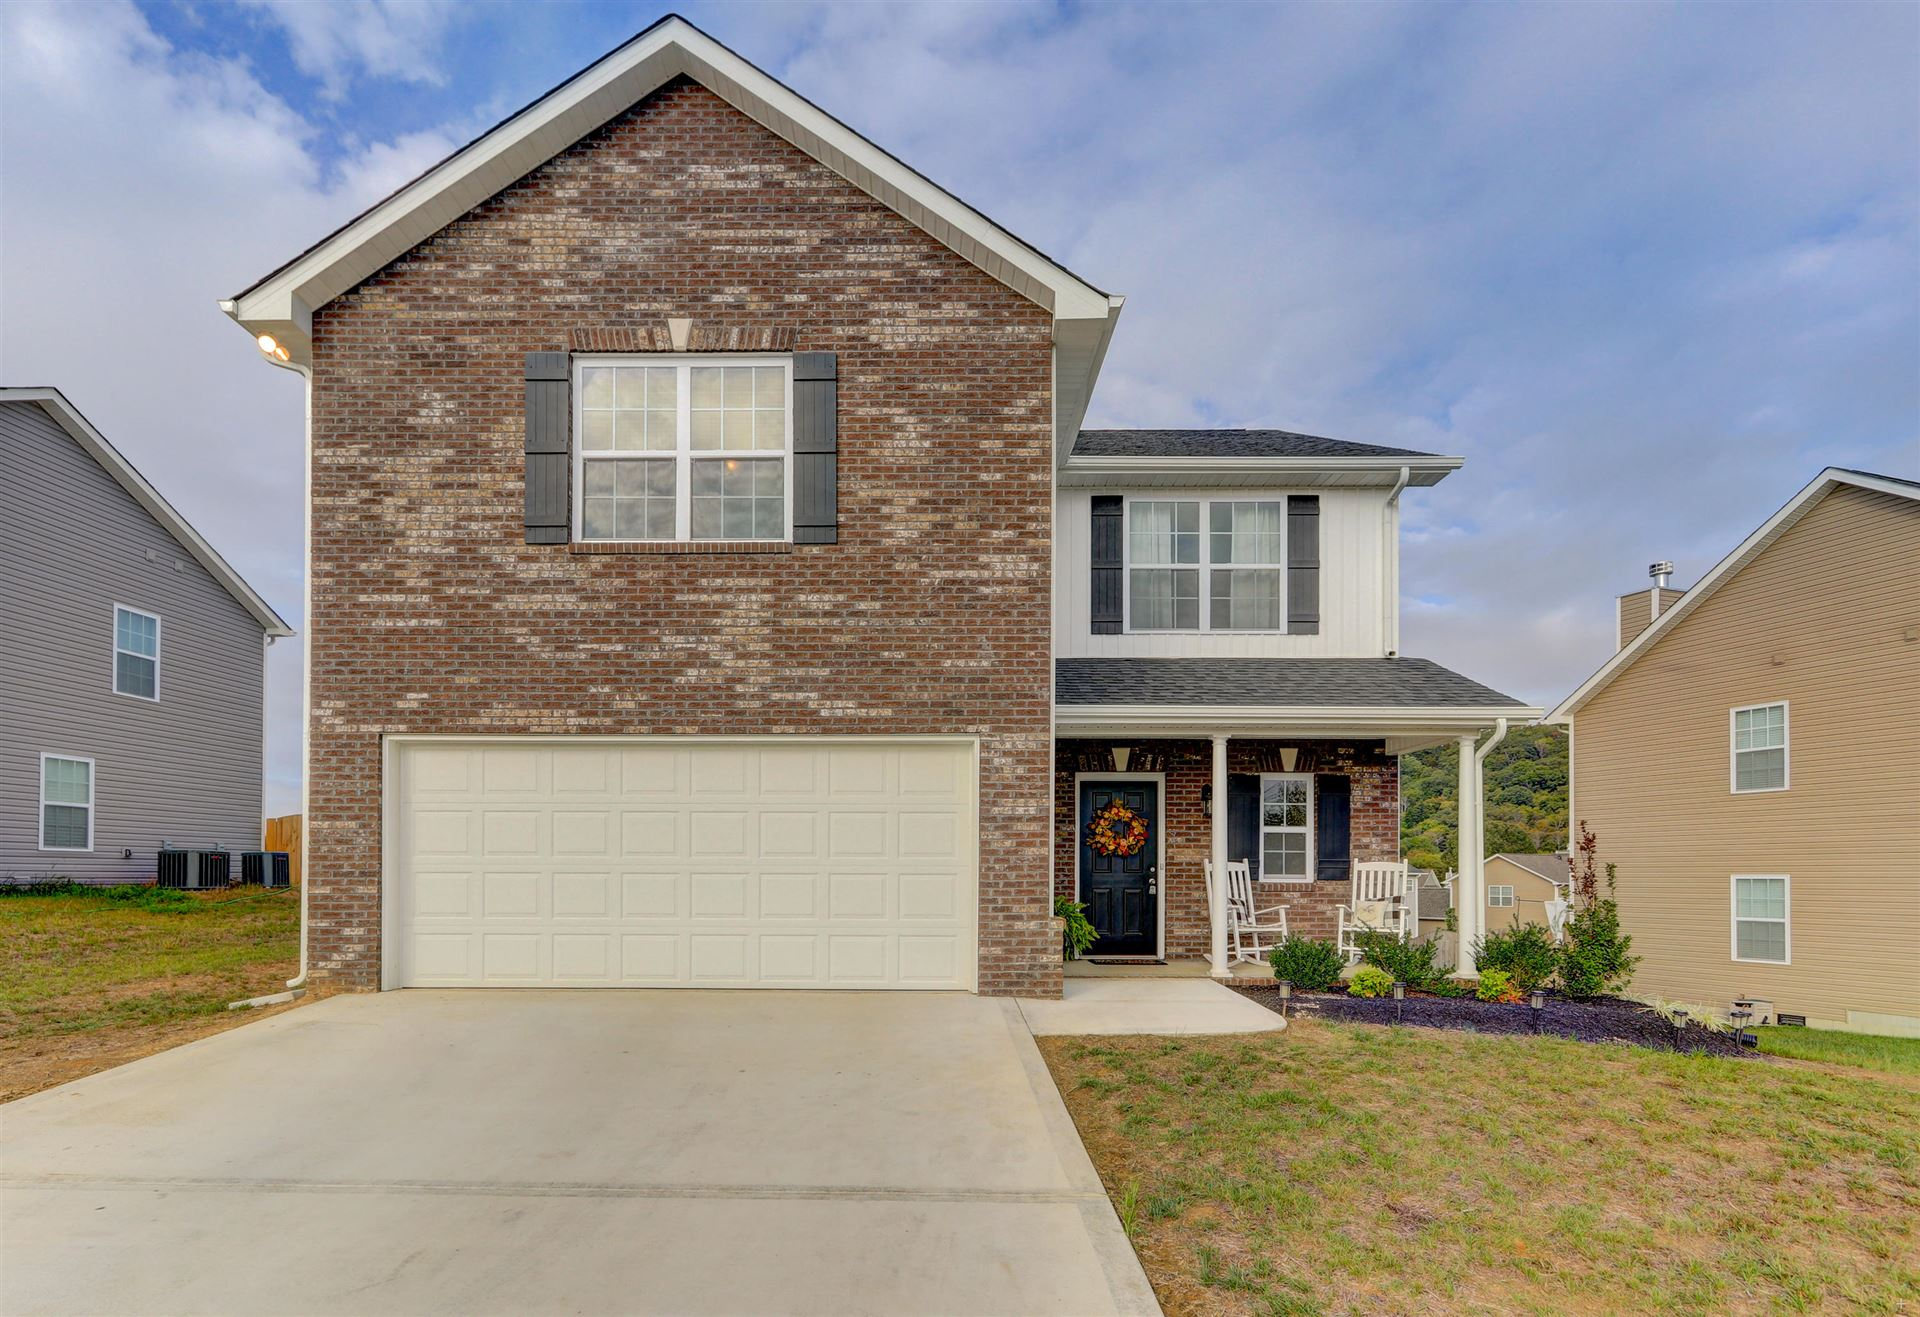 Photo of 2681 Honey Hill Rd, Knoxville, TN 37924 (MLS # 1108263)